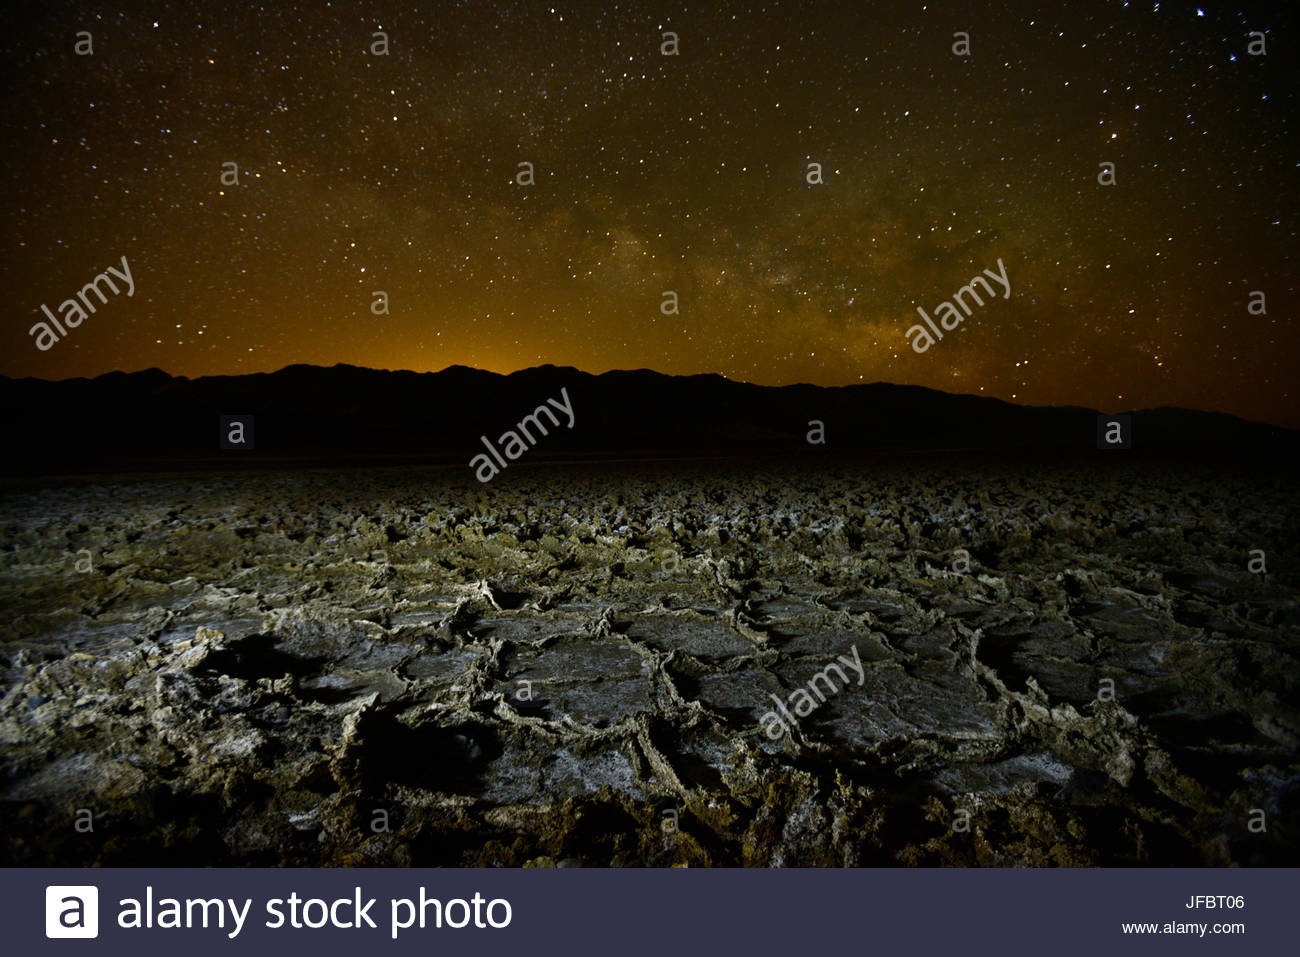 A starry sky over salt deposits along West Side Road. Stock Photo